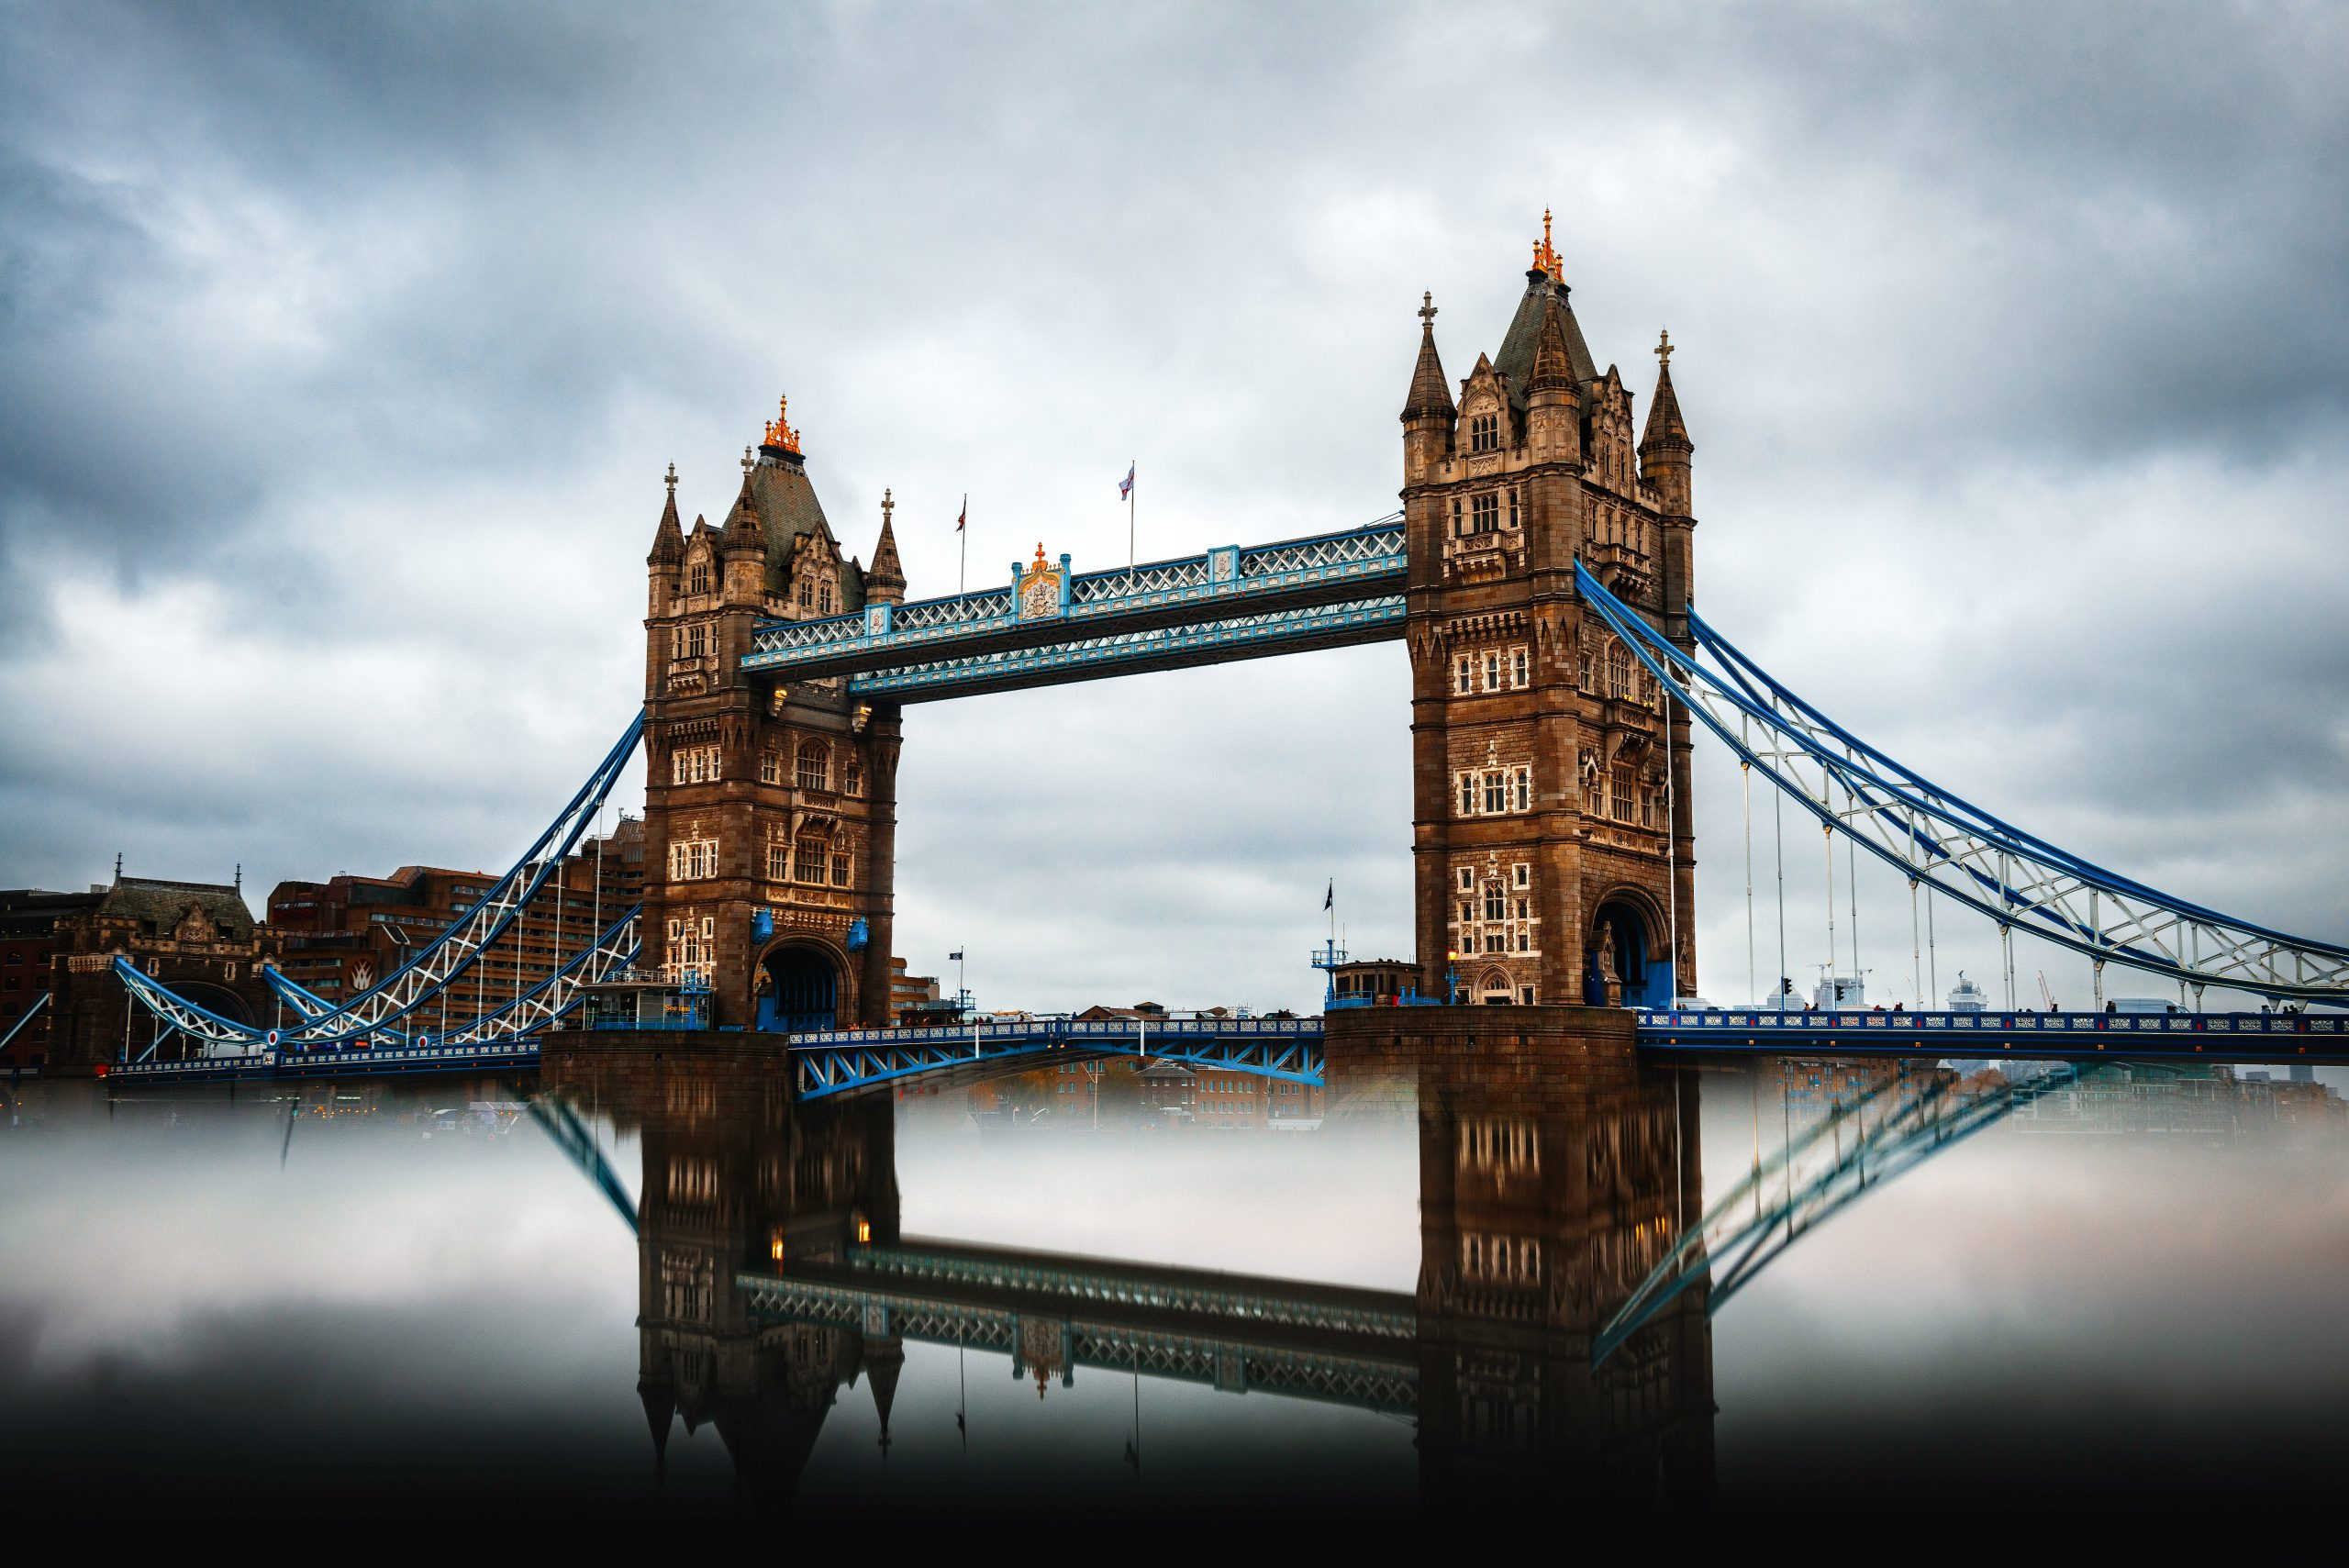 Tower bridge under gray sky